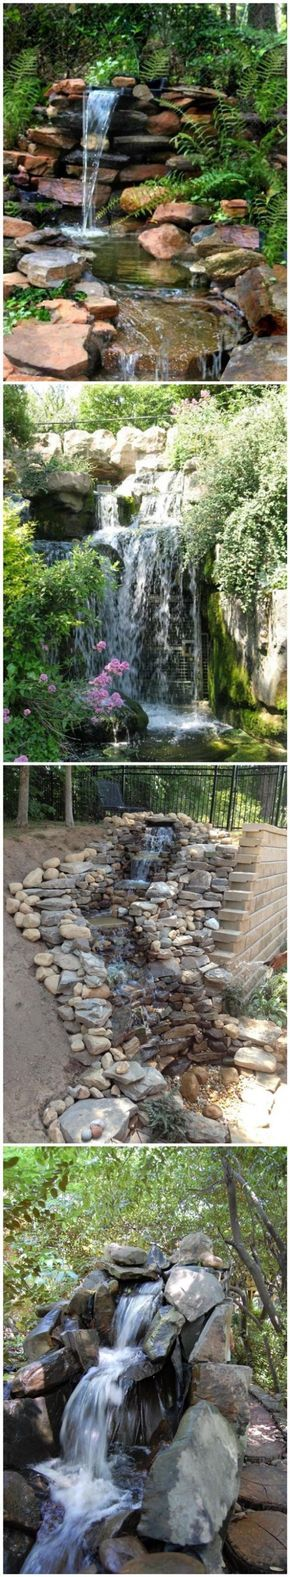 How To Build A Garden Waterfall Pond DIY Tag pasture Pinterest